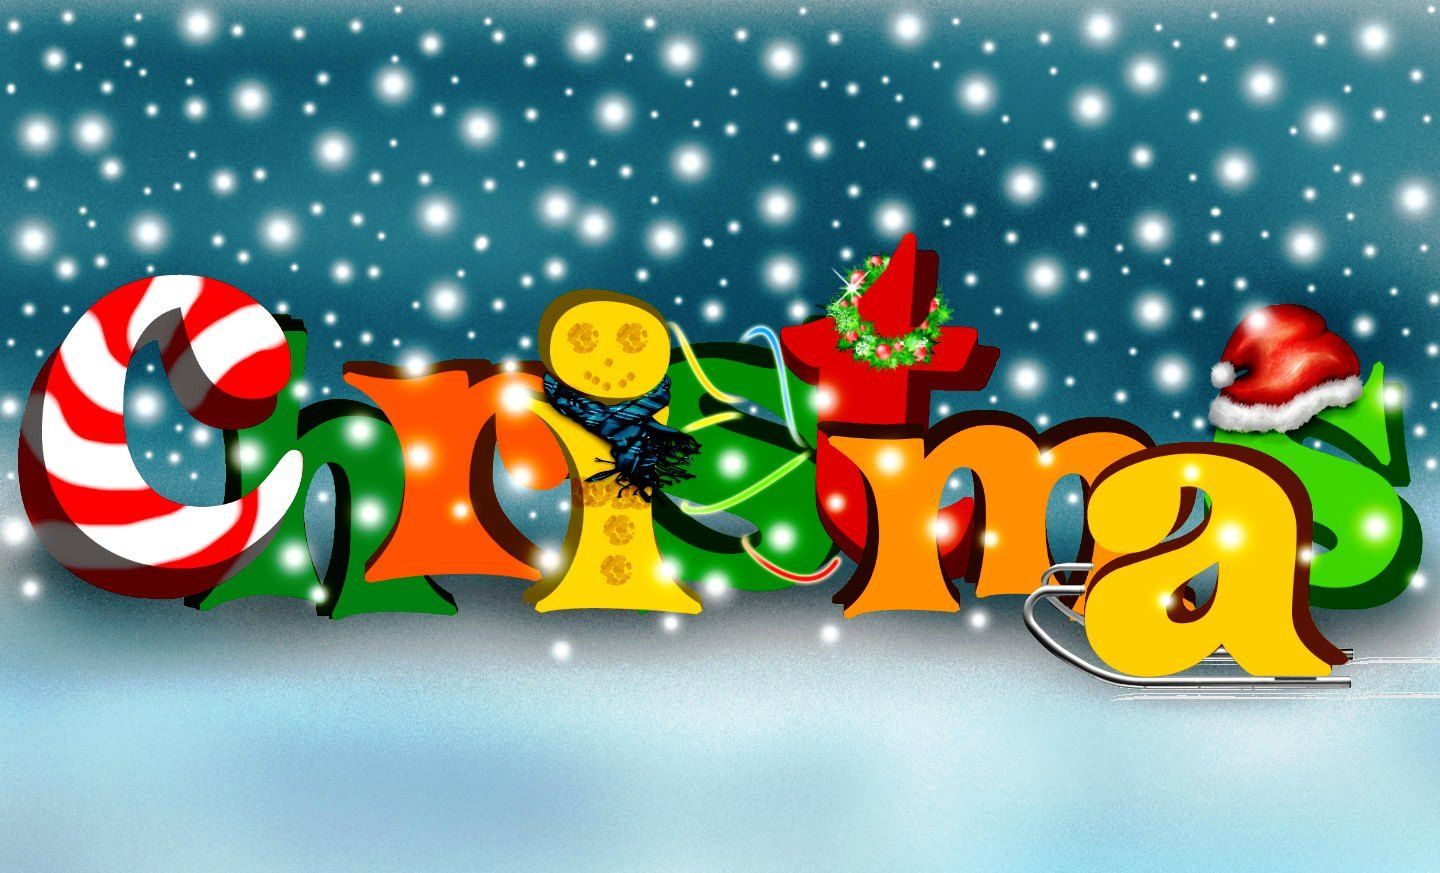 Christmas Wallpapers For Computer Backgrounds - Wallpaper Cave